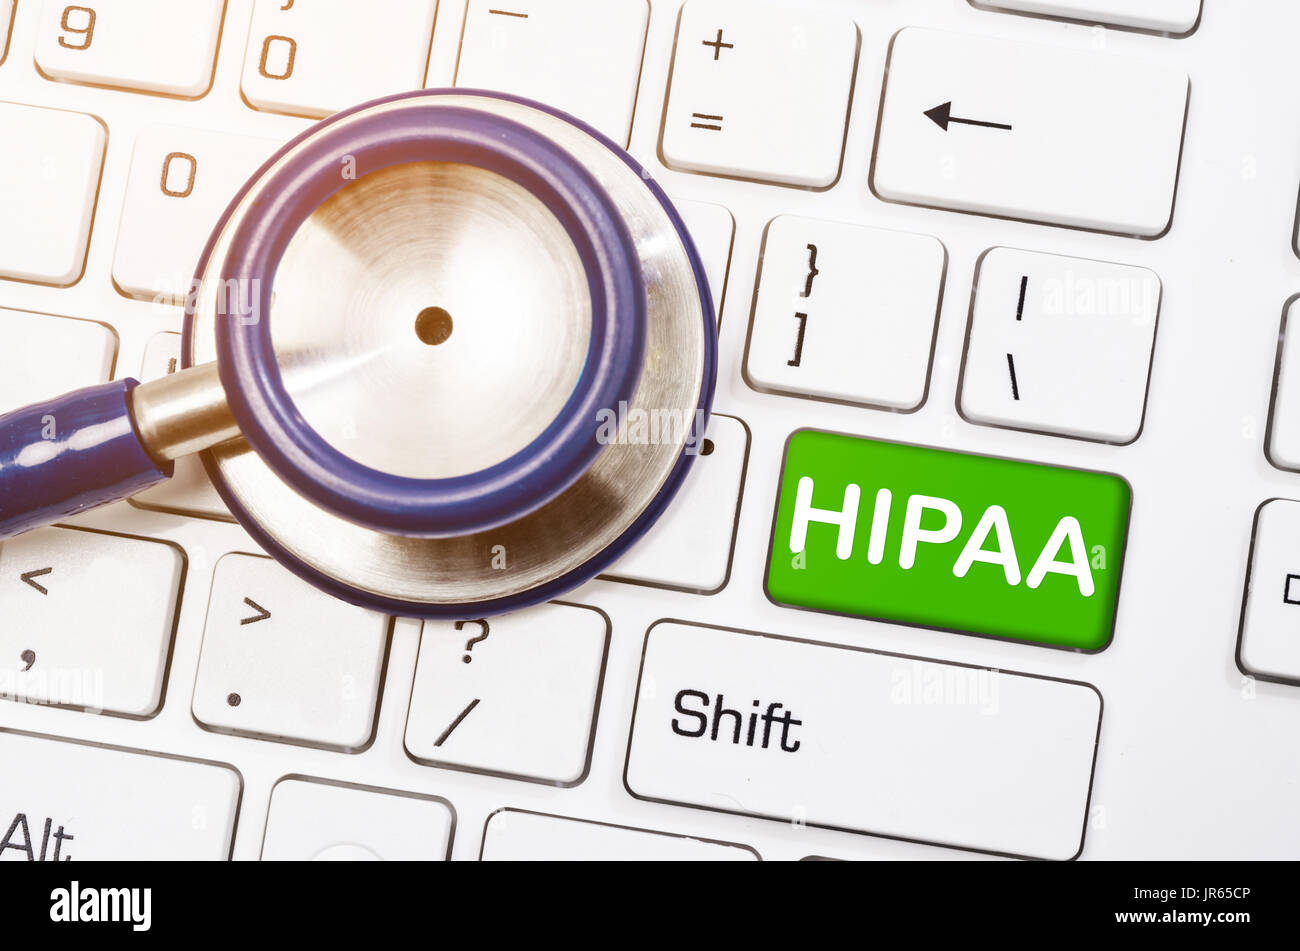 Health Insurance Portability and Accountability Concept - Stethoscope with written HIPPA on coumputer keyboard. - Stock Image